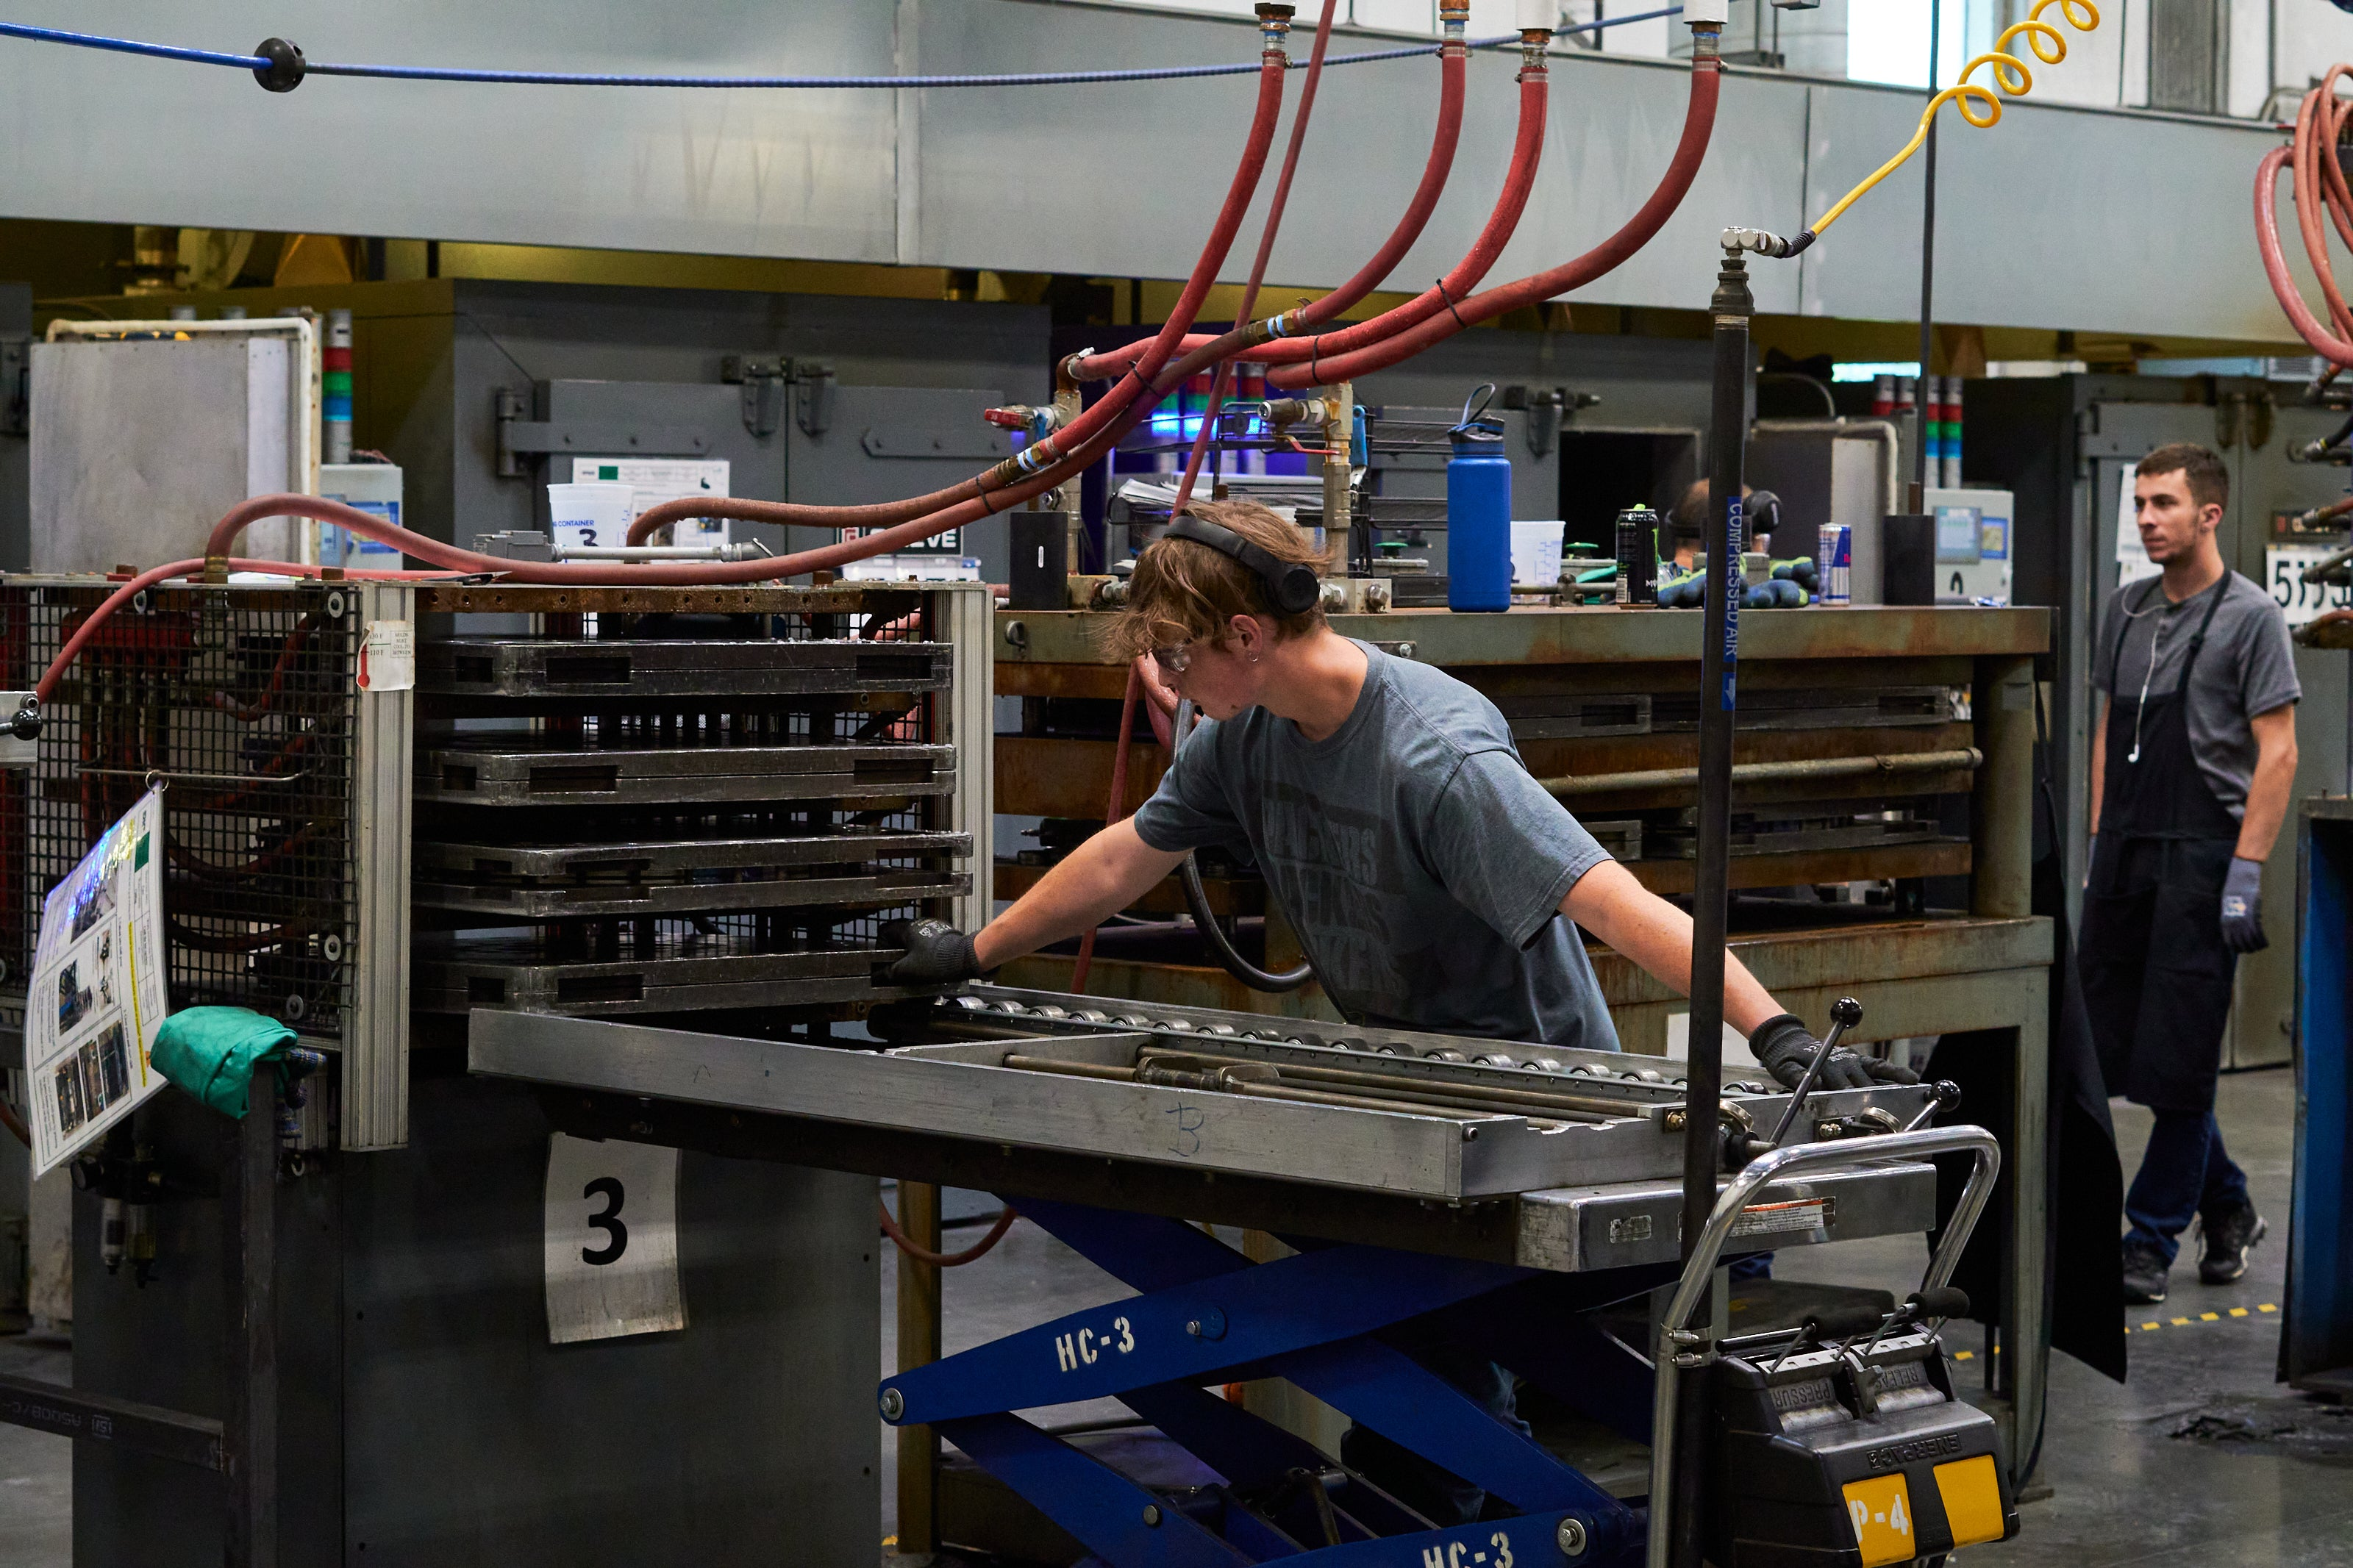 ENVE Factory tour with Contender Bicycles - carbon going into oven